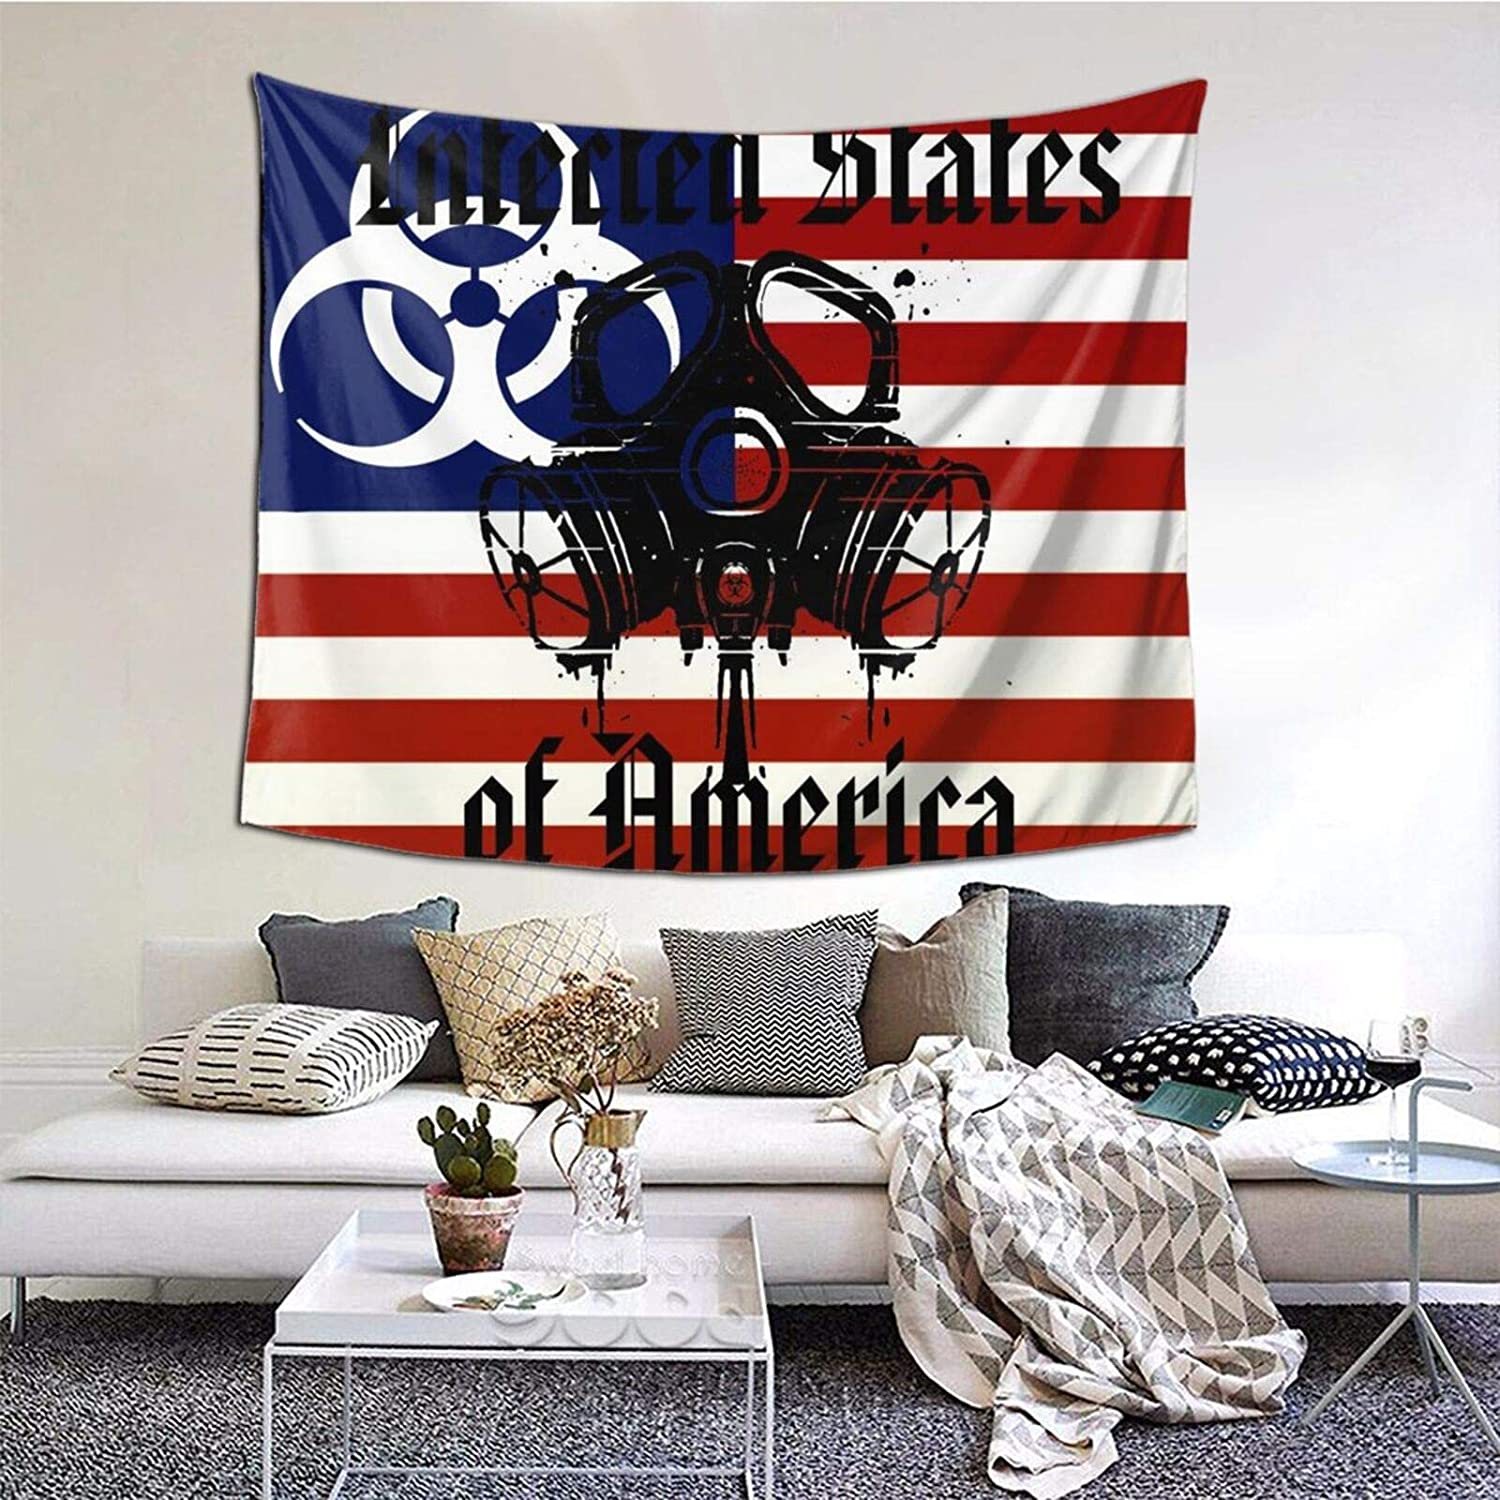 ANNBITION Tapestry Zombie Infected States of America Wall Hanging Home Decor for Living Room Bedroom Dorm Room 60 W X 51 H Inches